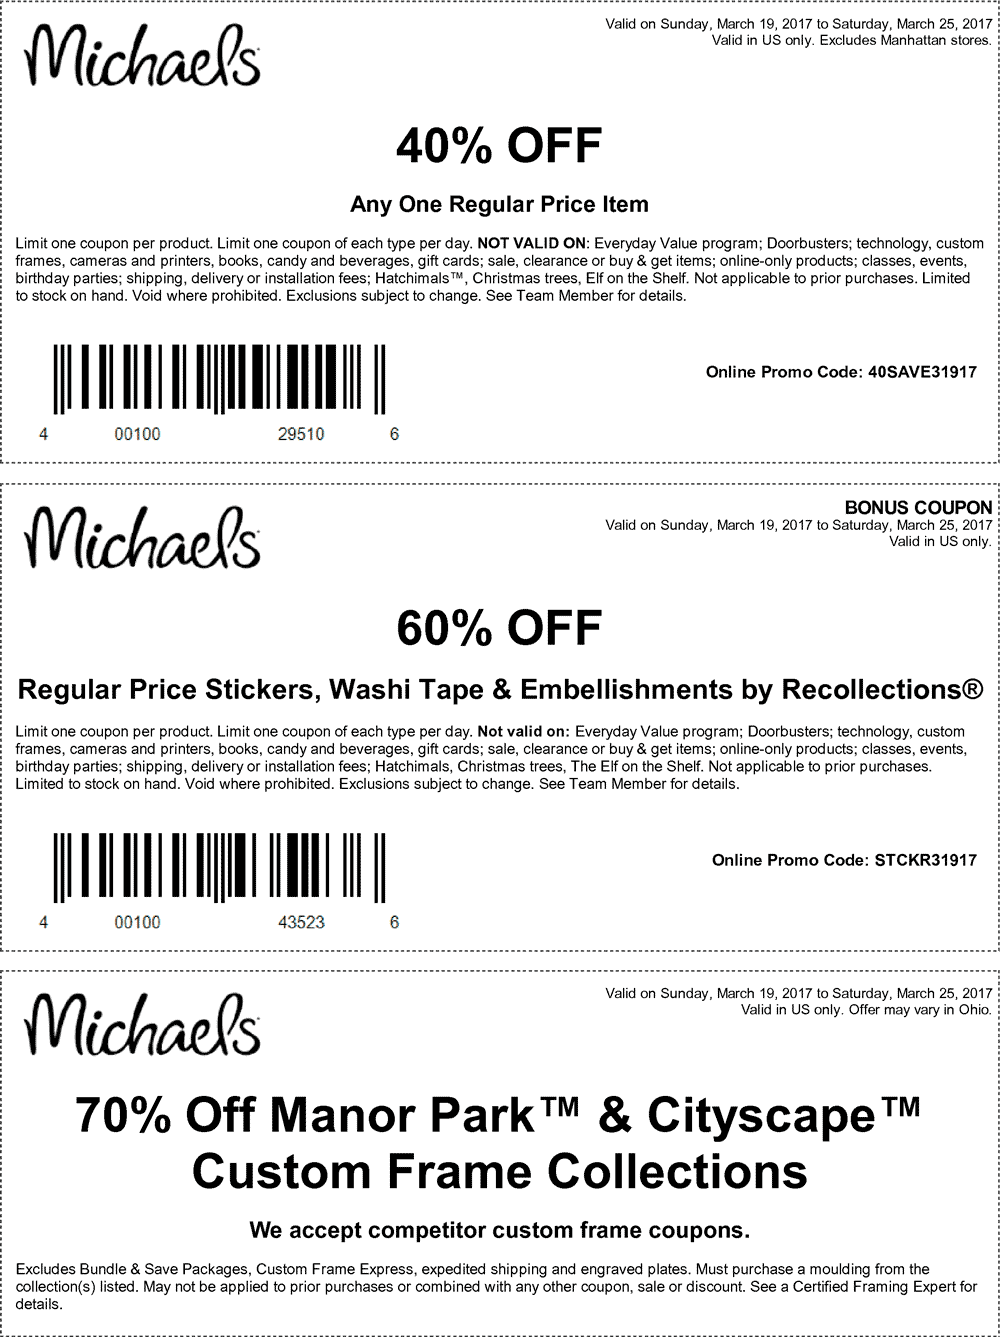 Michaels Coupon February 2018 40% off a single item at Michaels, or online via promo code 40SAVE31917